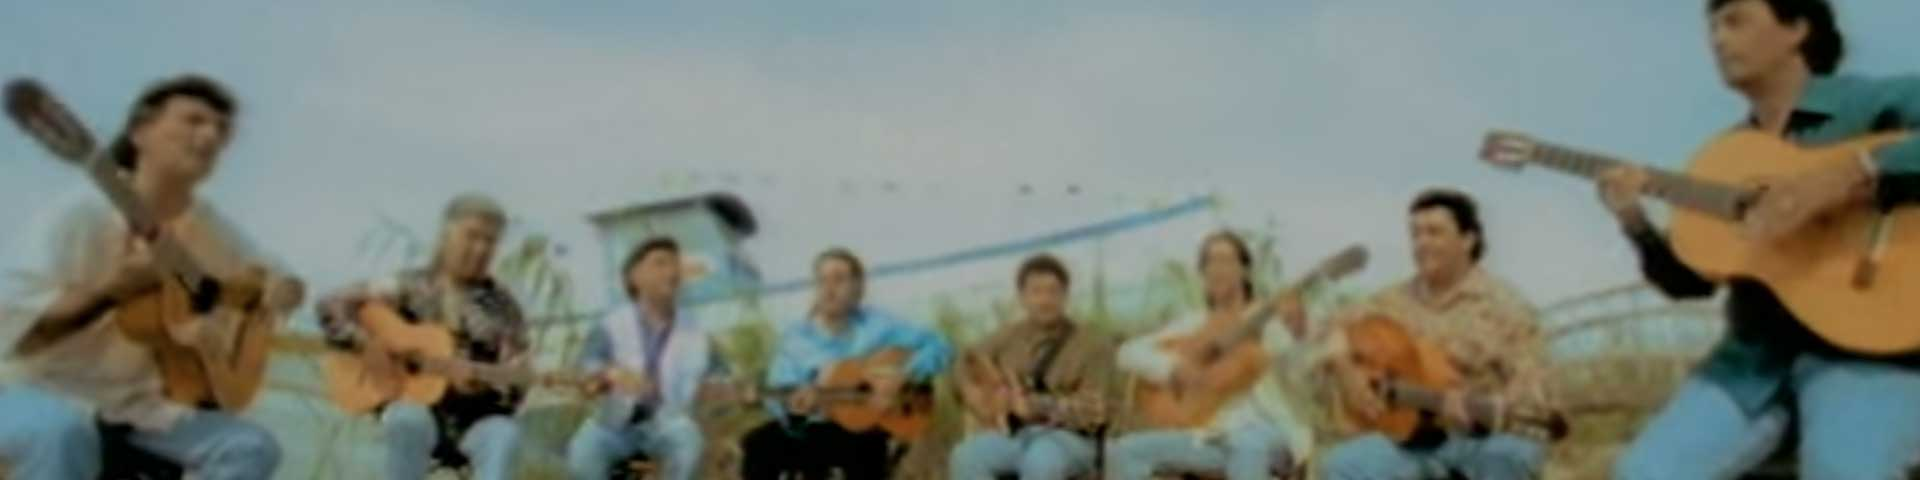 Who is GIpsy Kings? image